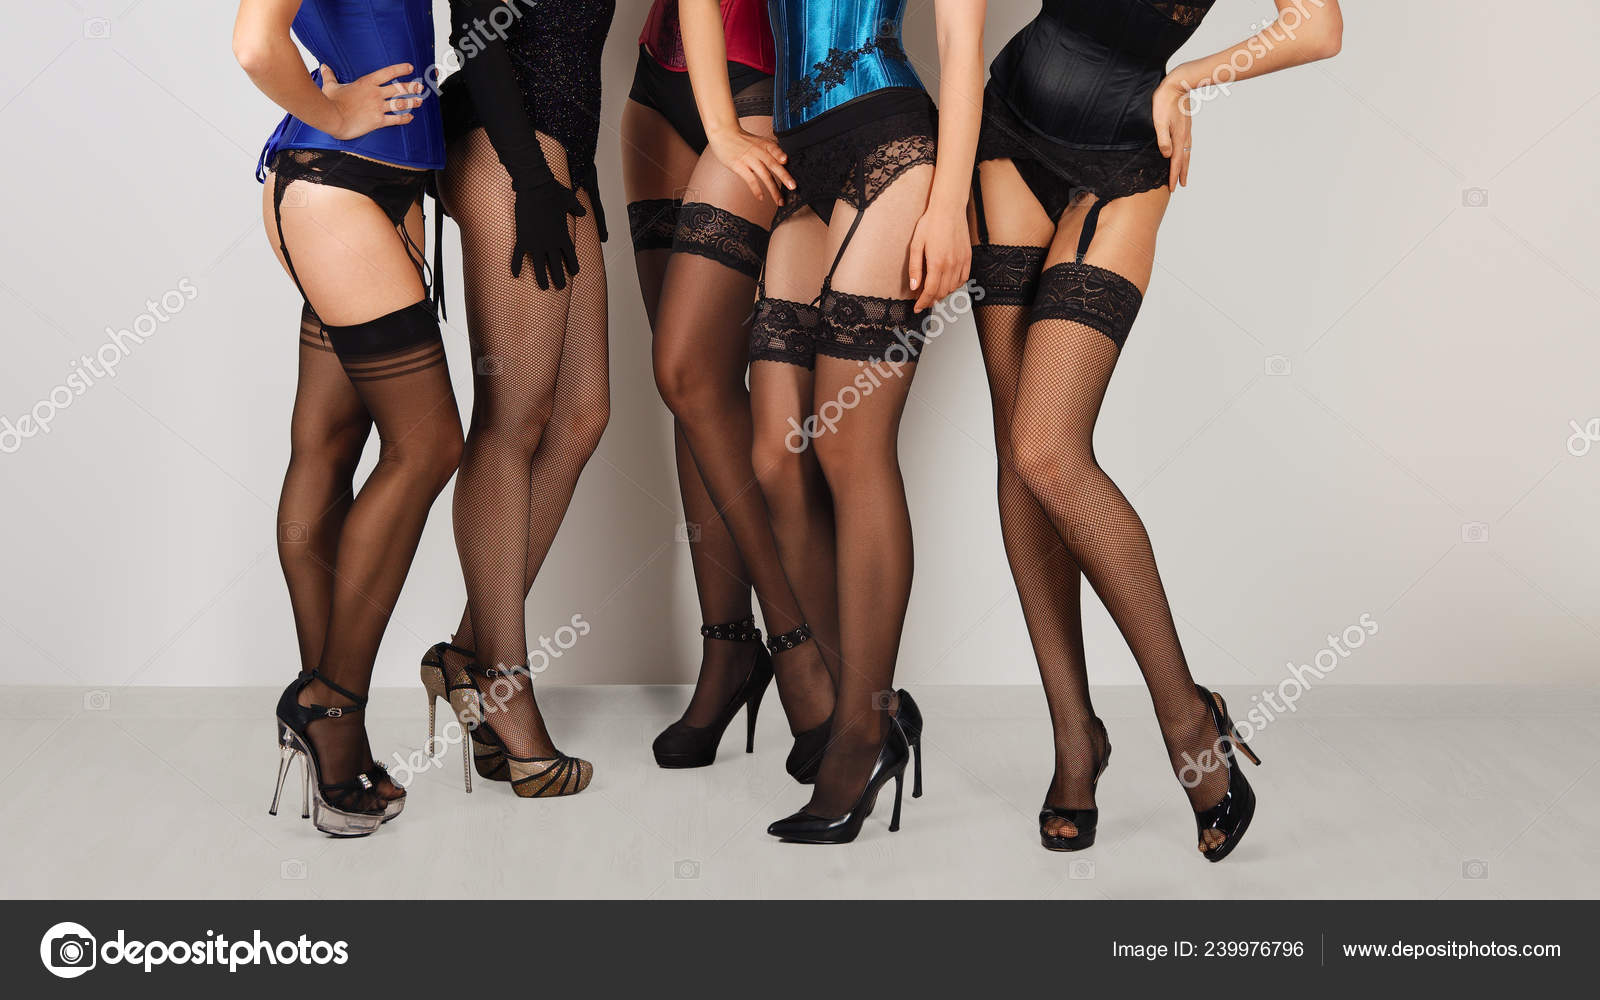 Sexy models in stockings and suspender belts